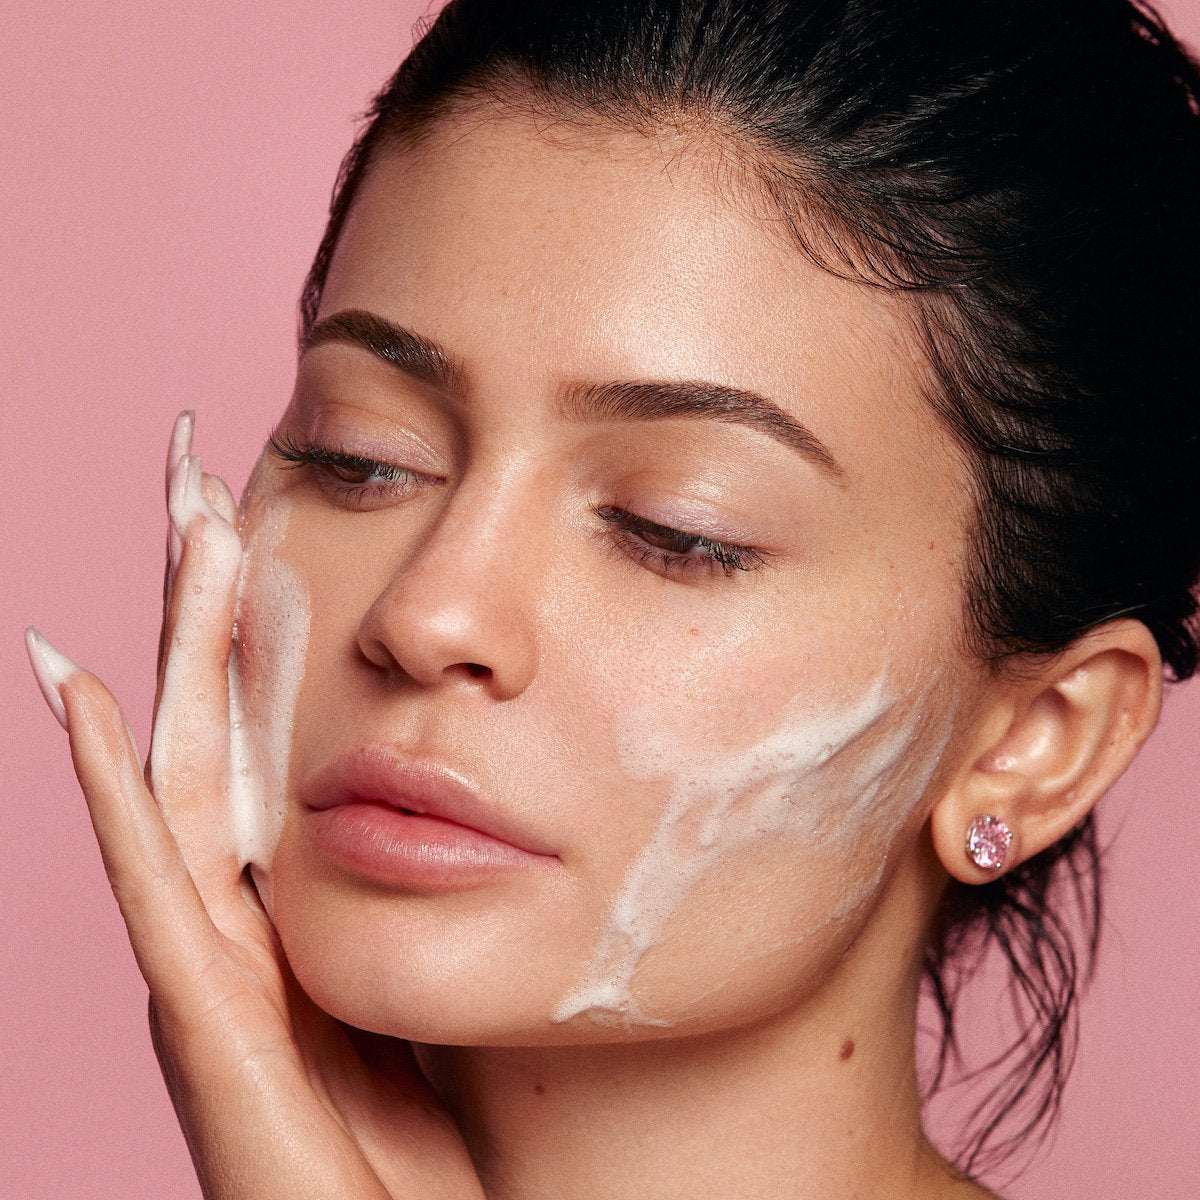 Kylie using Kylie Skin Foaming Face Wash by Kylie Jenner